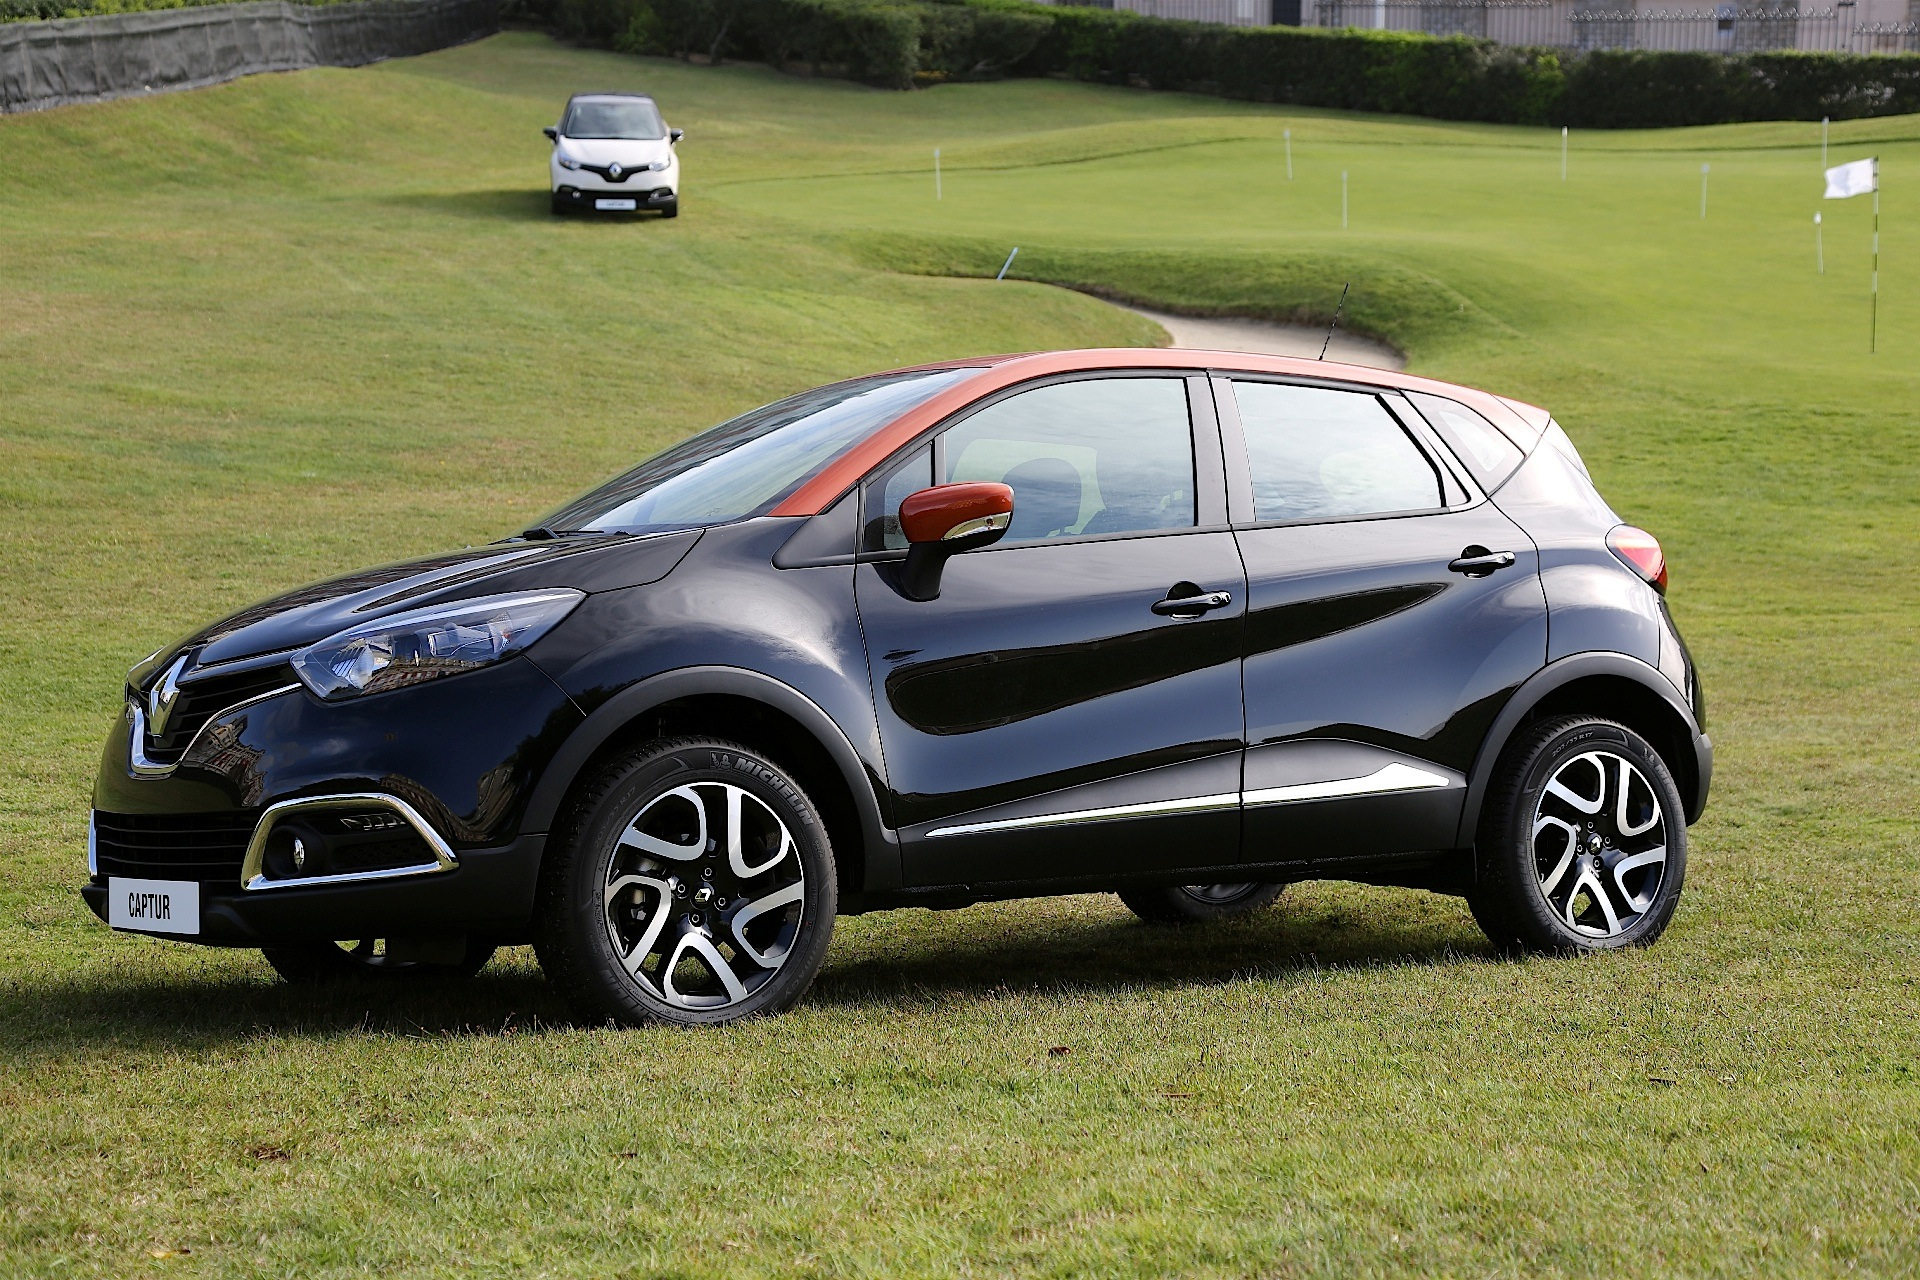 renault captur specs 2013 2014 2015 2016 2017. Black Bedroom Furniture Sets. Home Design Ideas